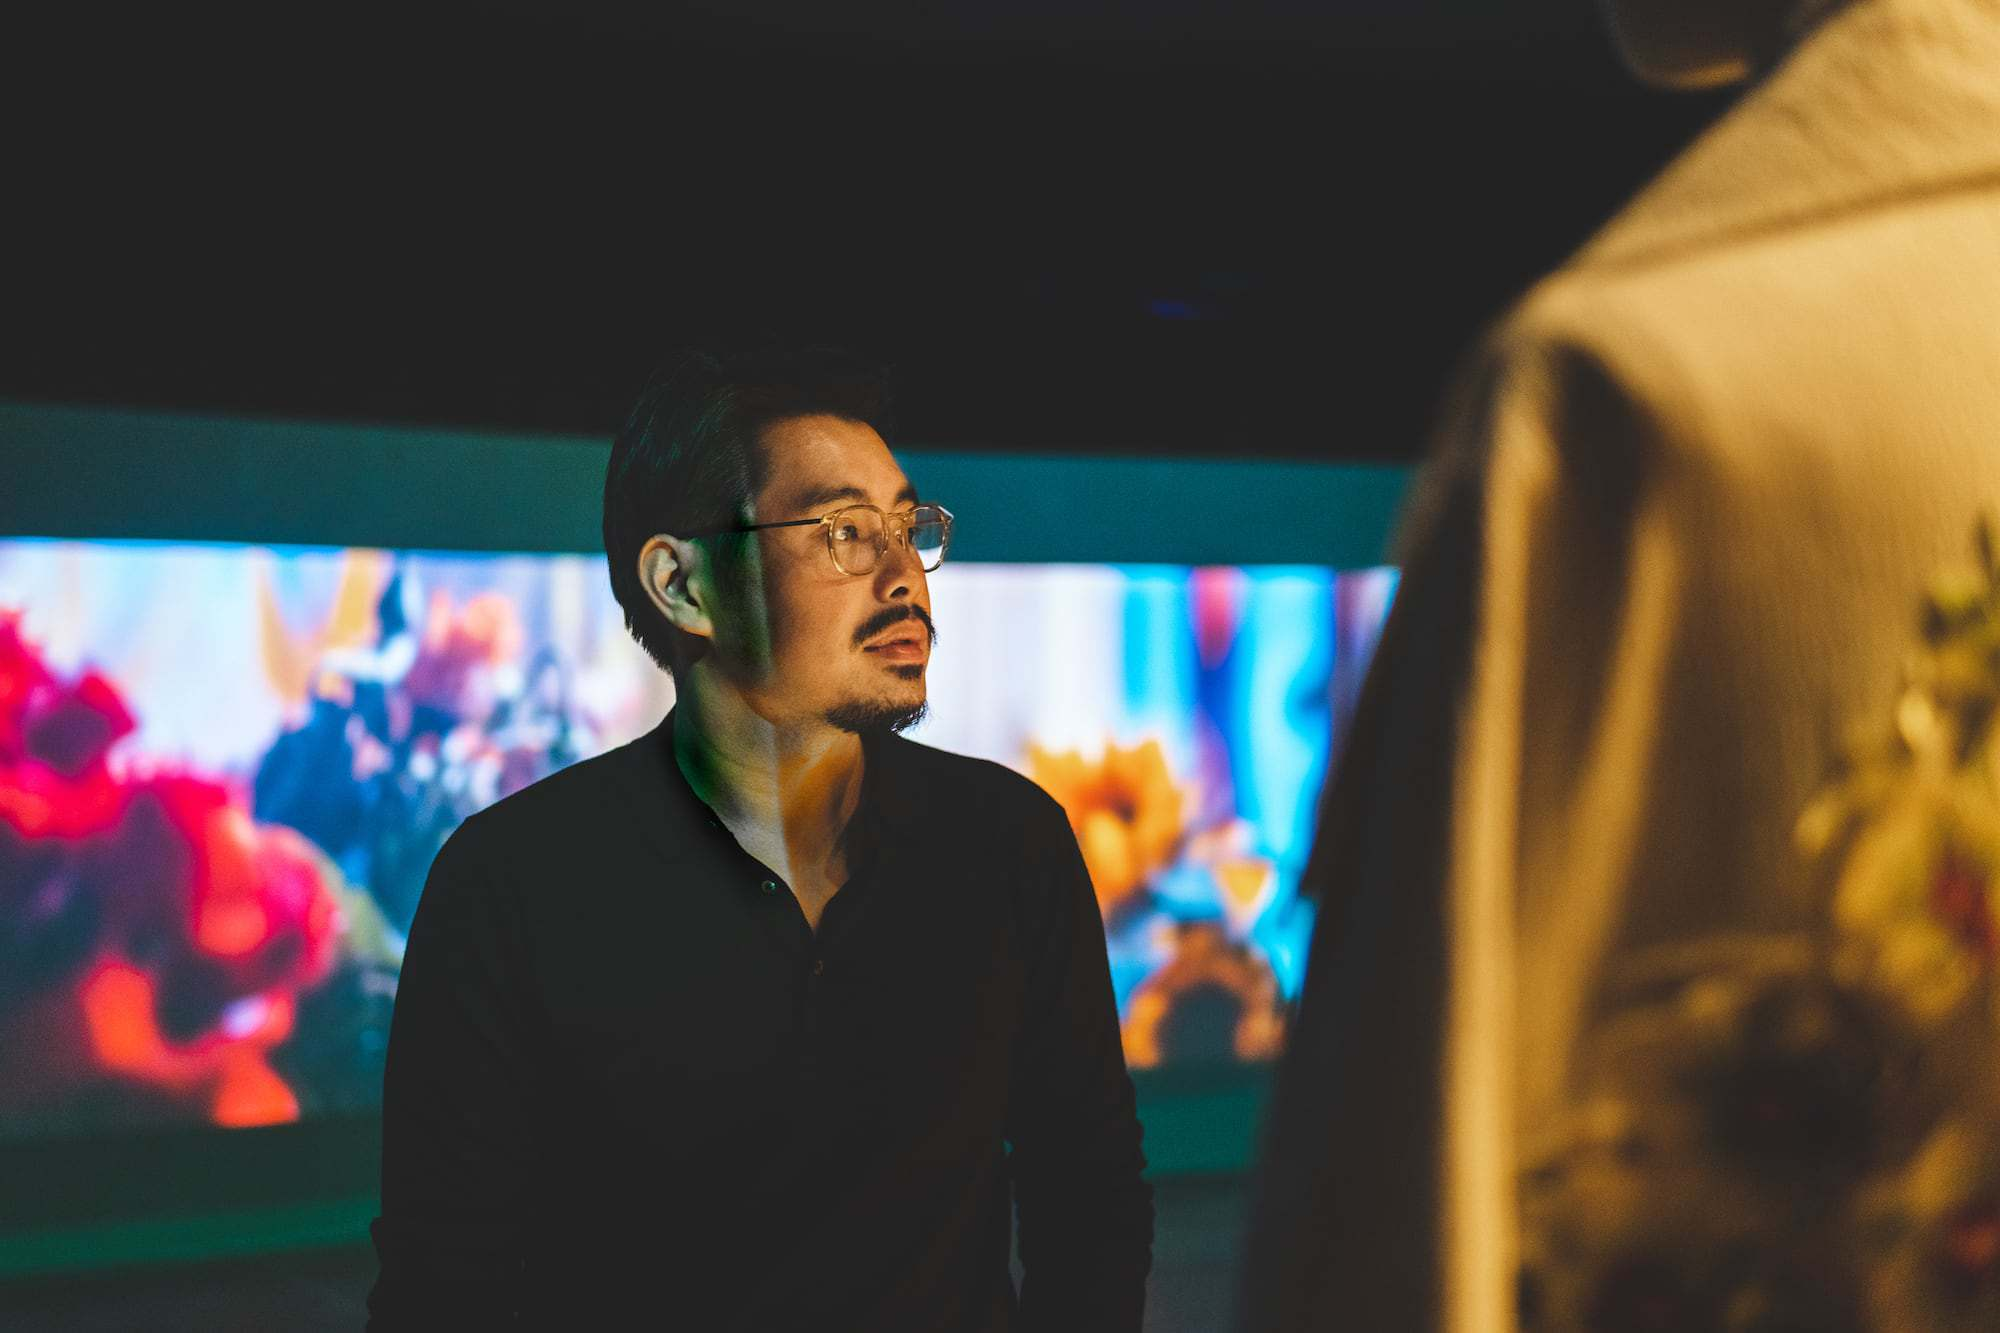 Cong Tri's Latest Show, Cuc Im Lang: A Spotlight On The Collaboration With Filmmaker Bao Nguyen